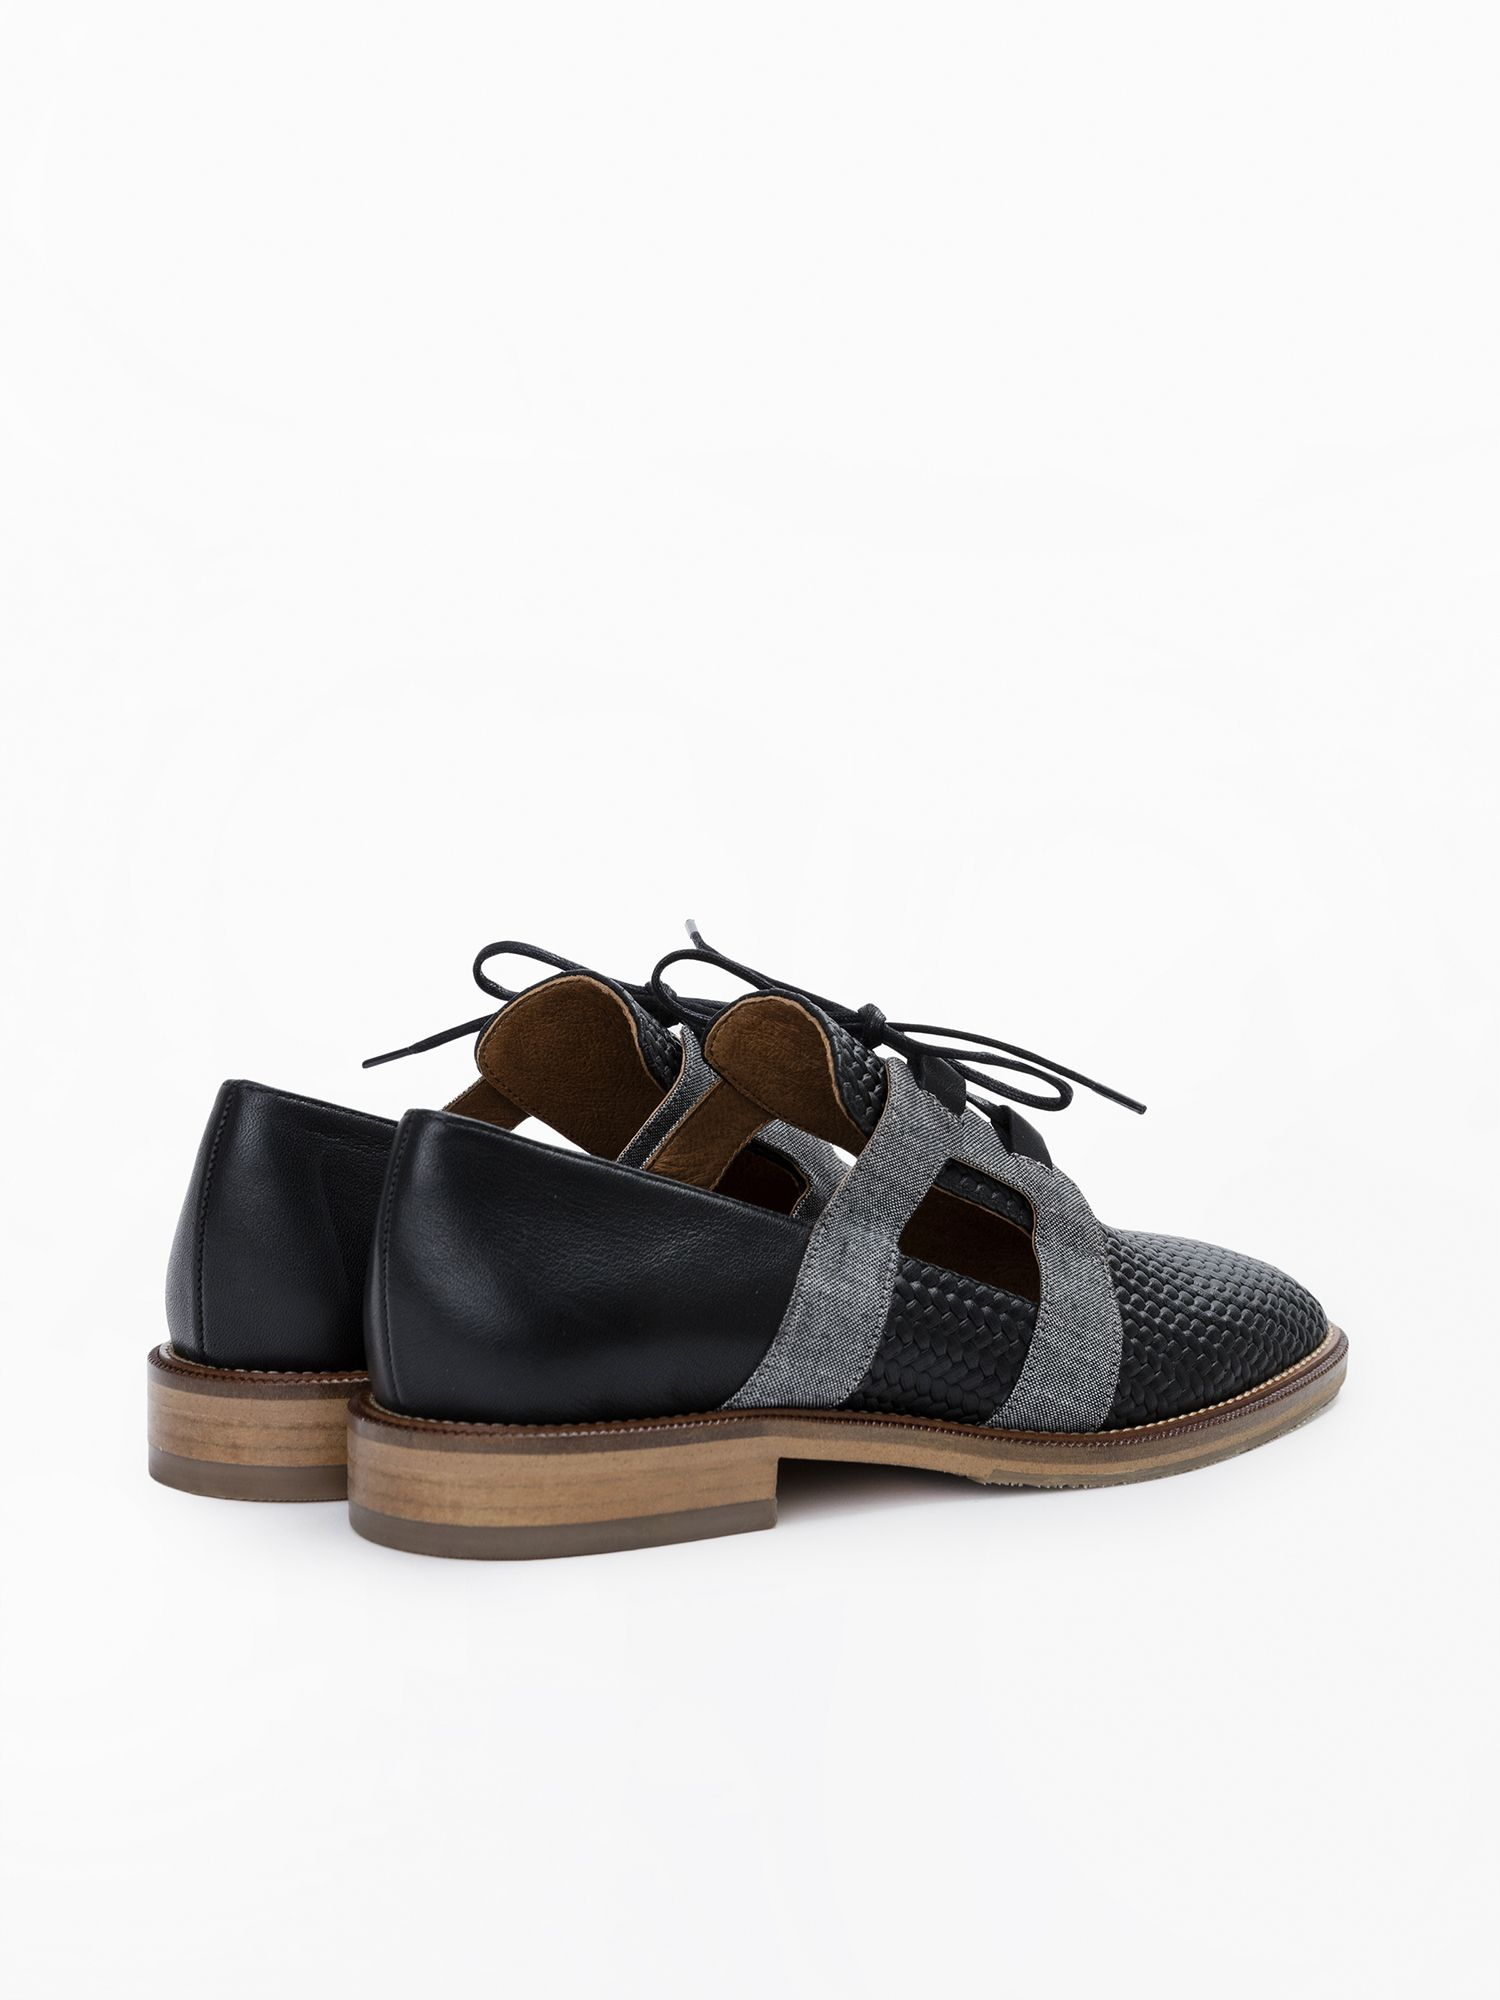 schmoove.fr Call Open - Sauvage/Chambray - Black/Black